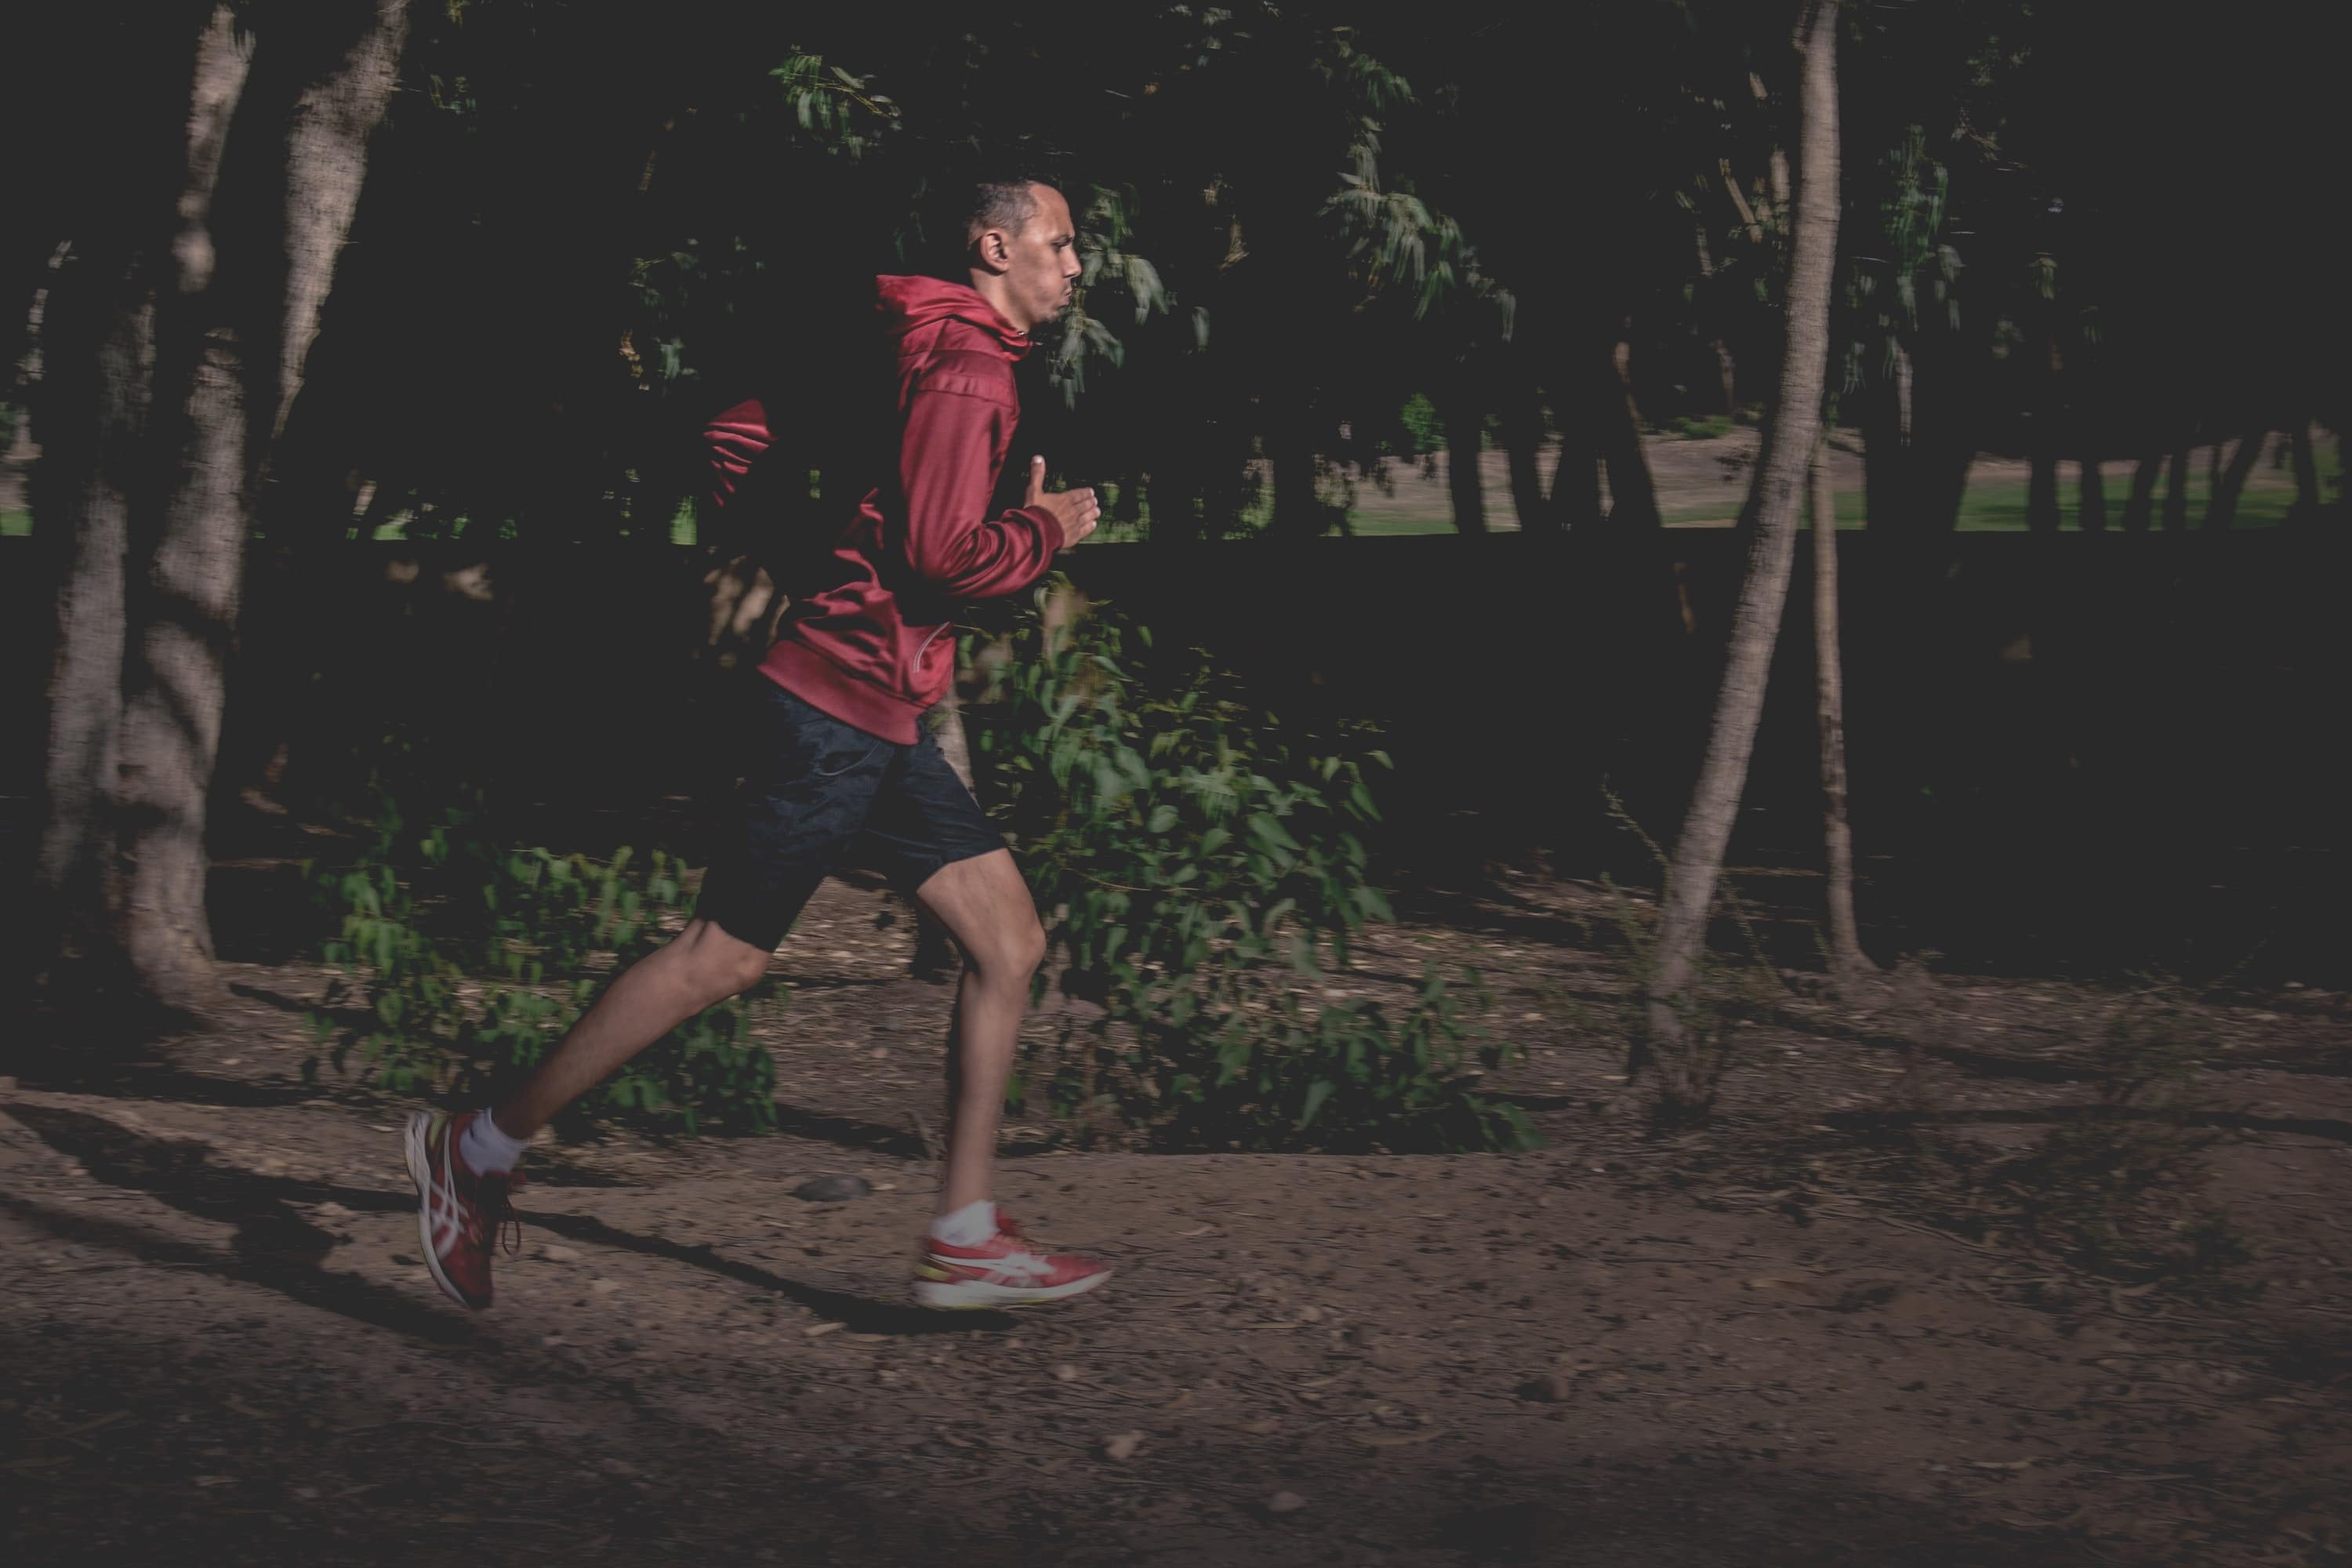 4 ways to adjust your training if your race has recently been cancelled or postponed